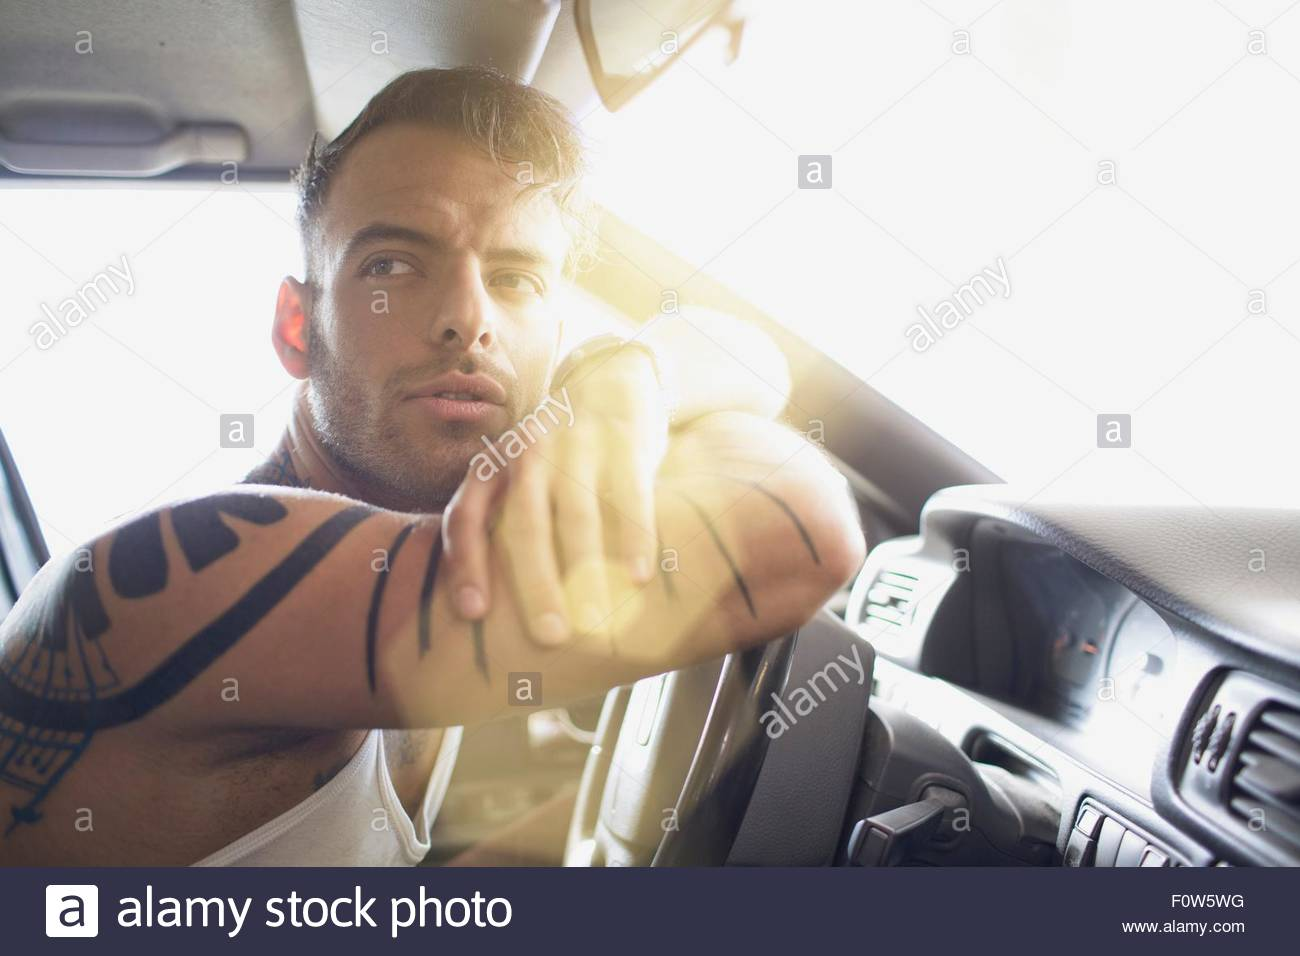 Young man arms crossed leaning against steering wheel - Stock Image